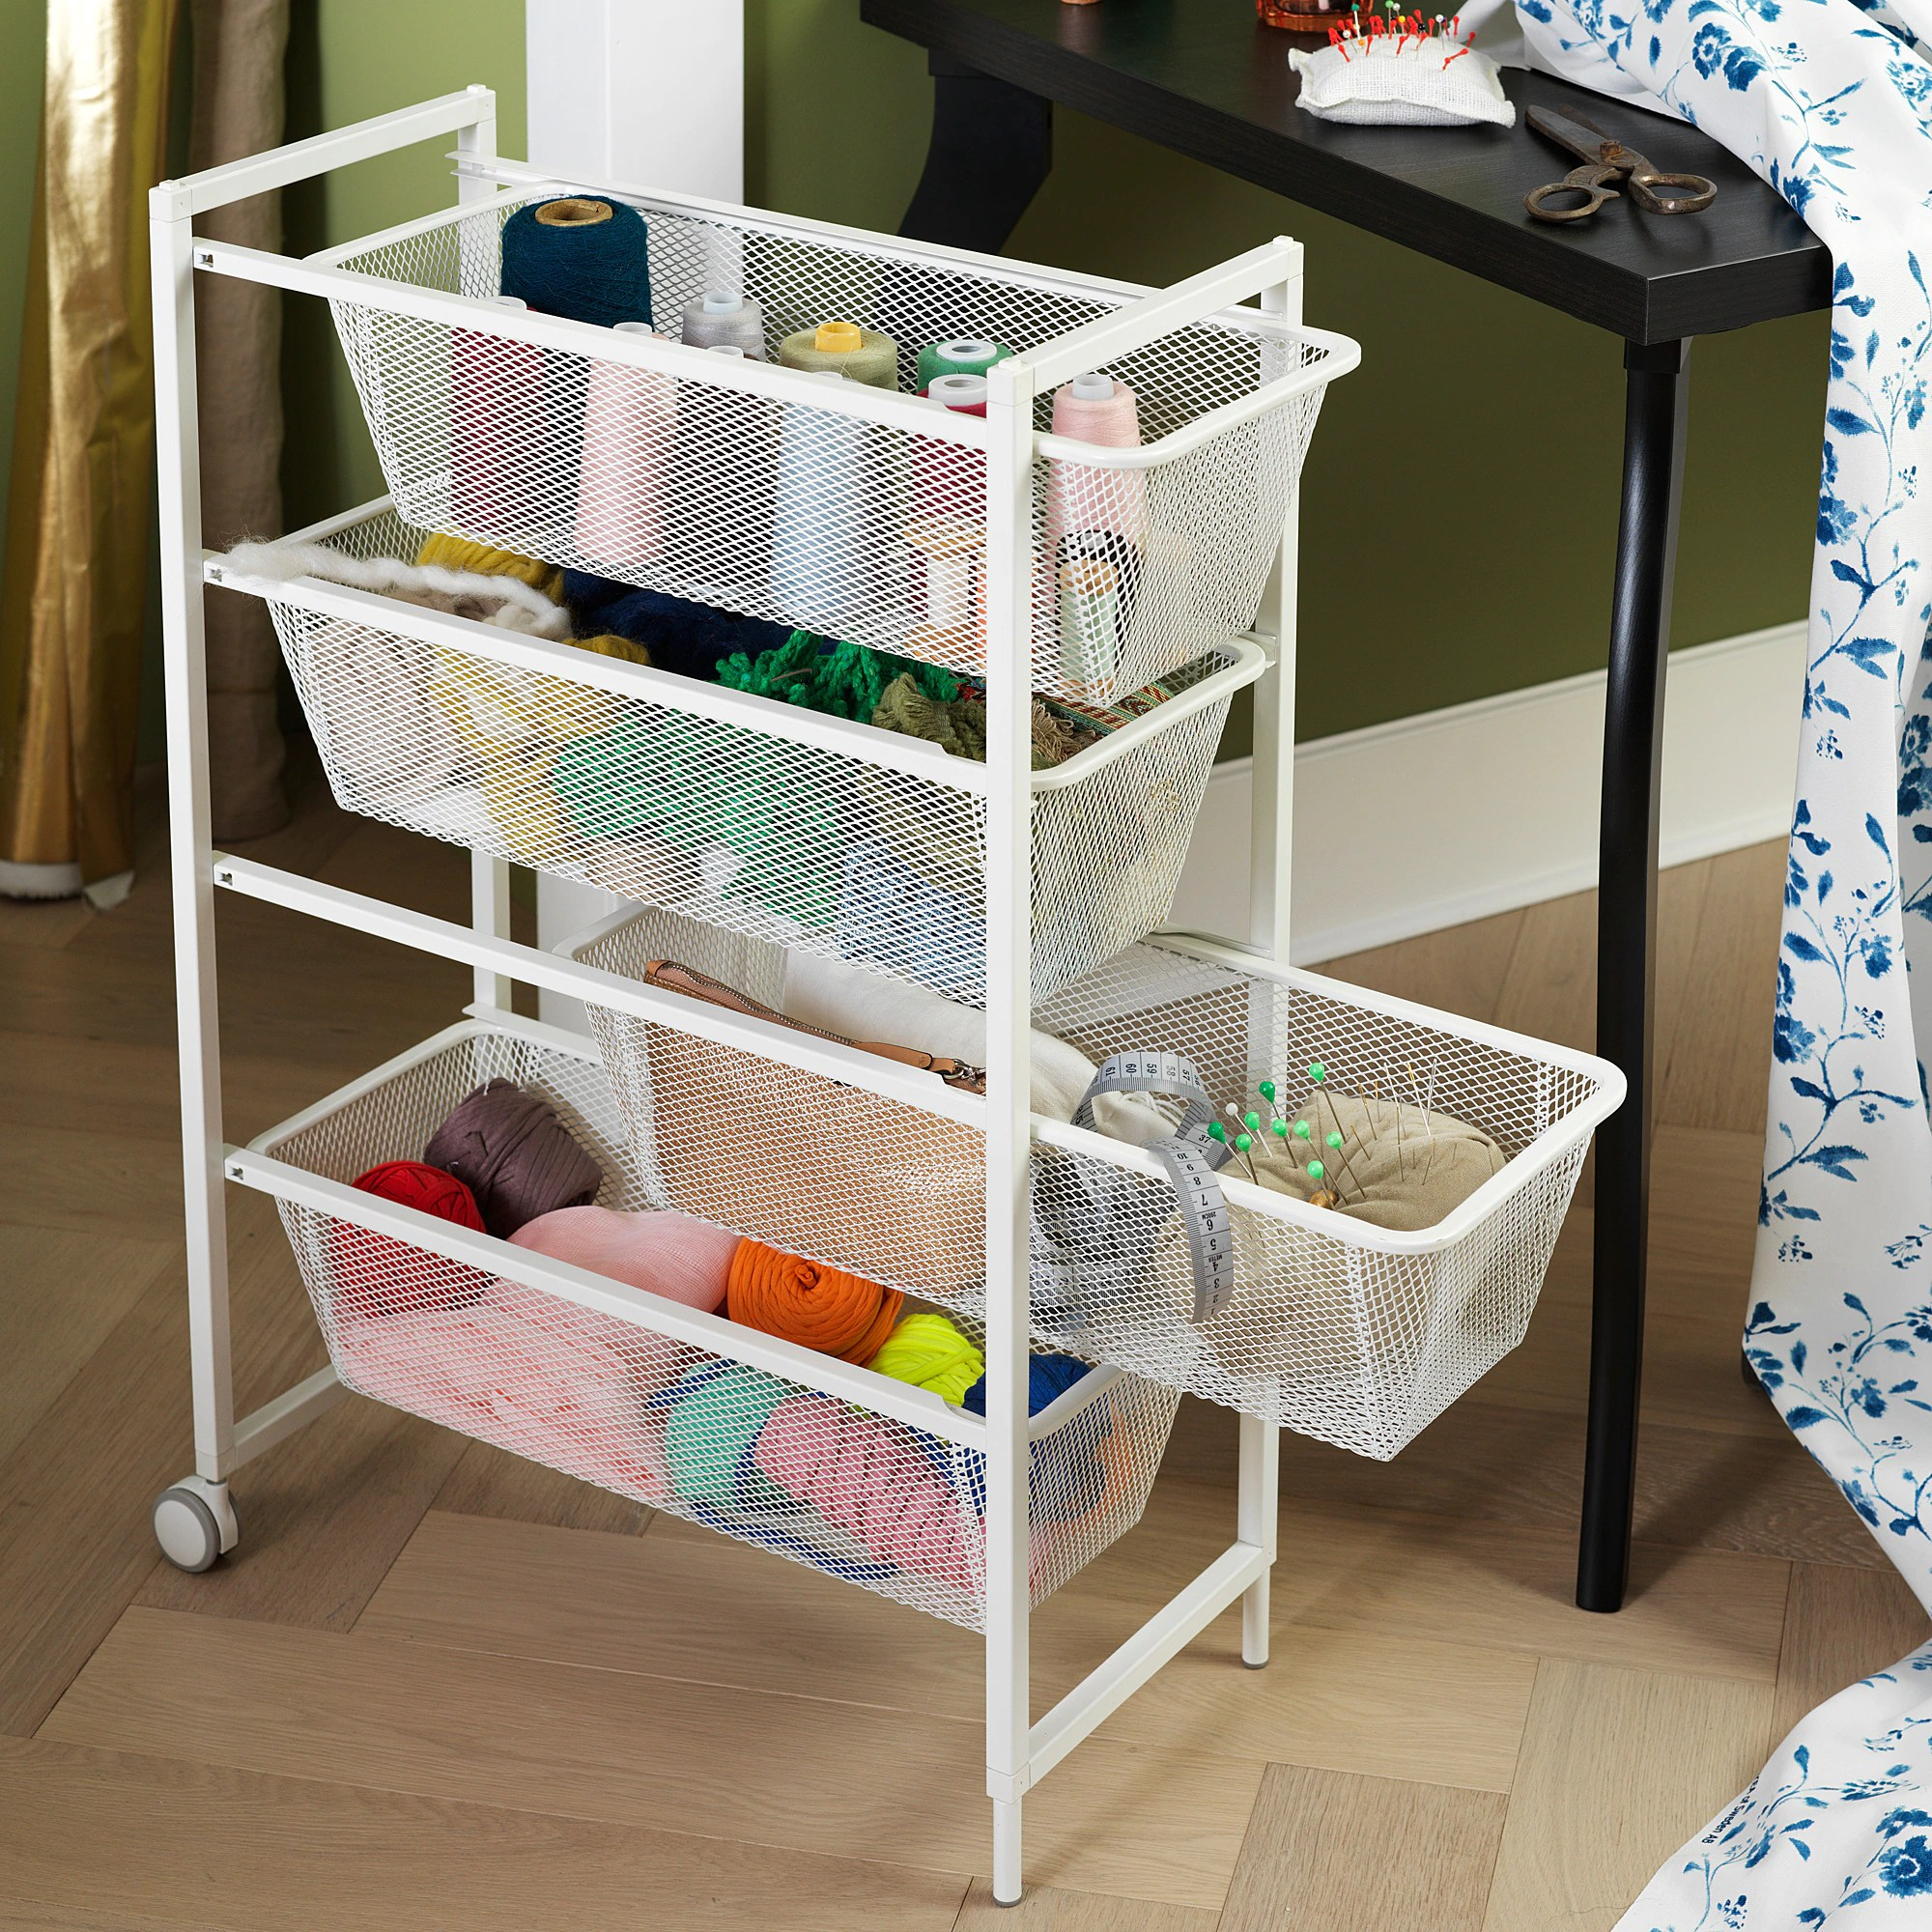 Ikea Wardrobe Tidy Jonaxel Frame With Mesh Baskets Casters